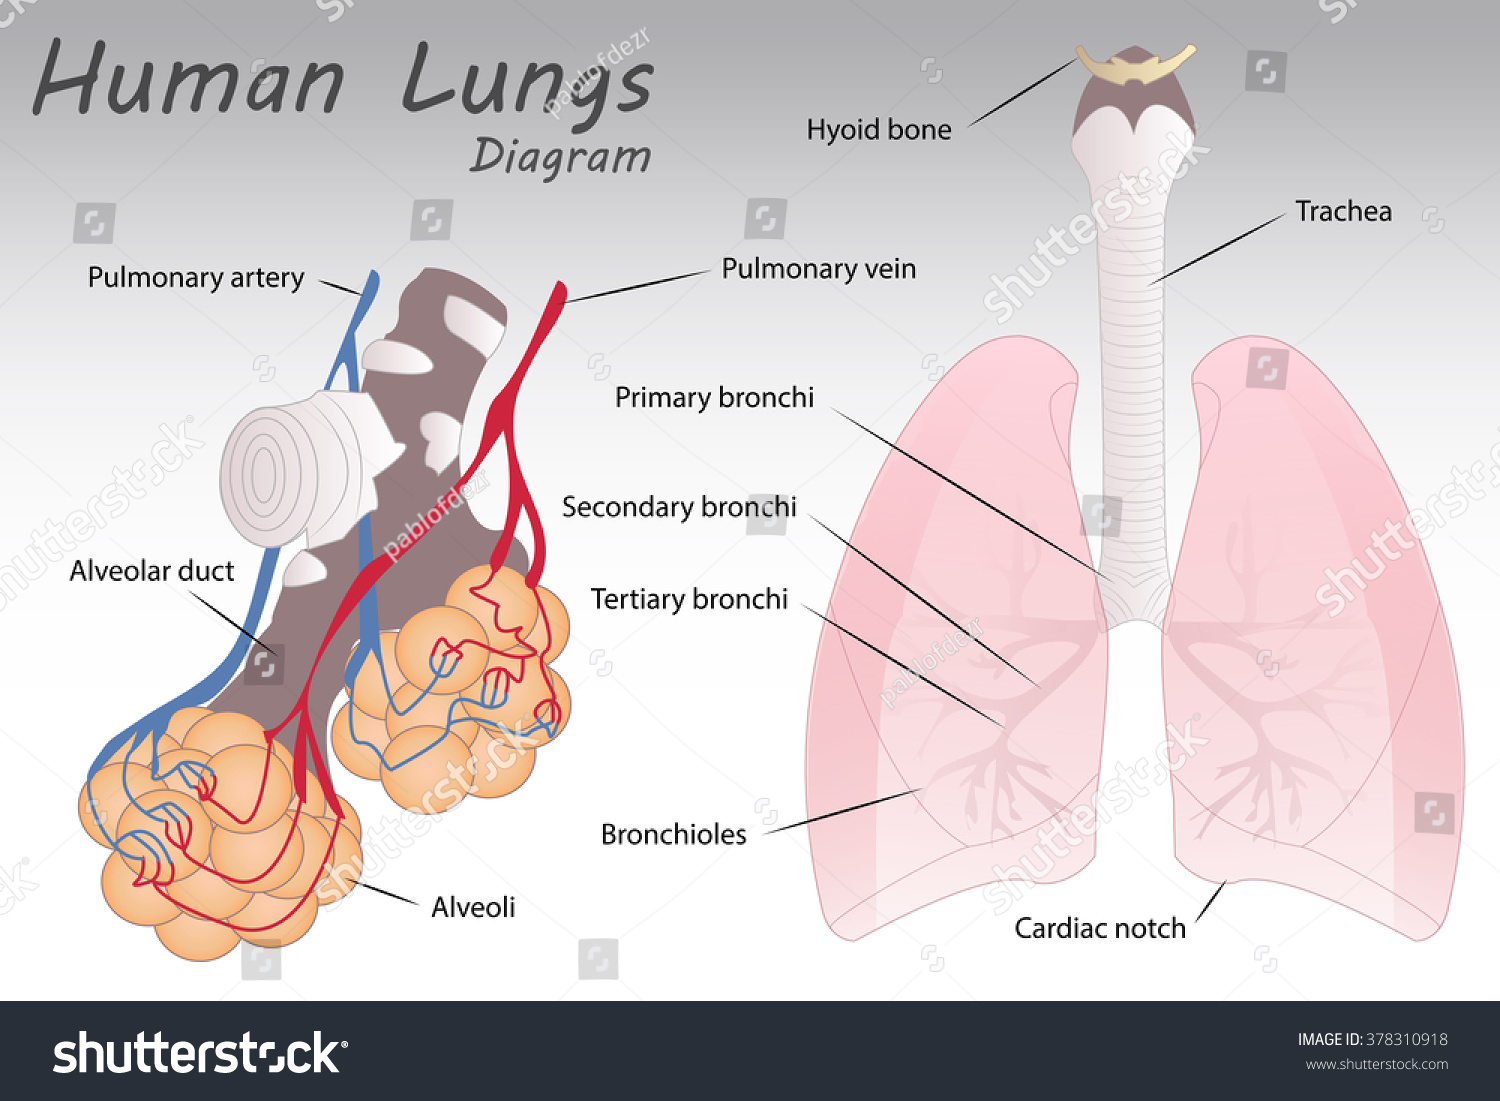 Human lungs diagram stock vector royalty free 378310918 shutterstock human lungs diagram ccuart Image collections